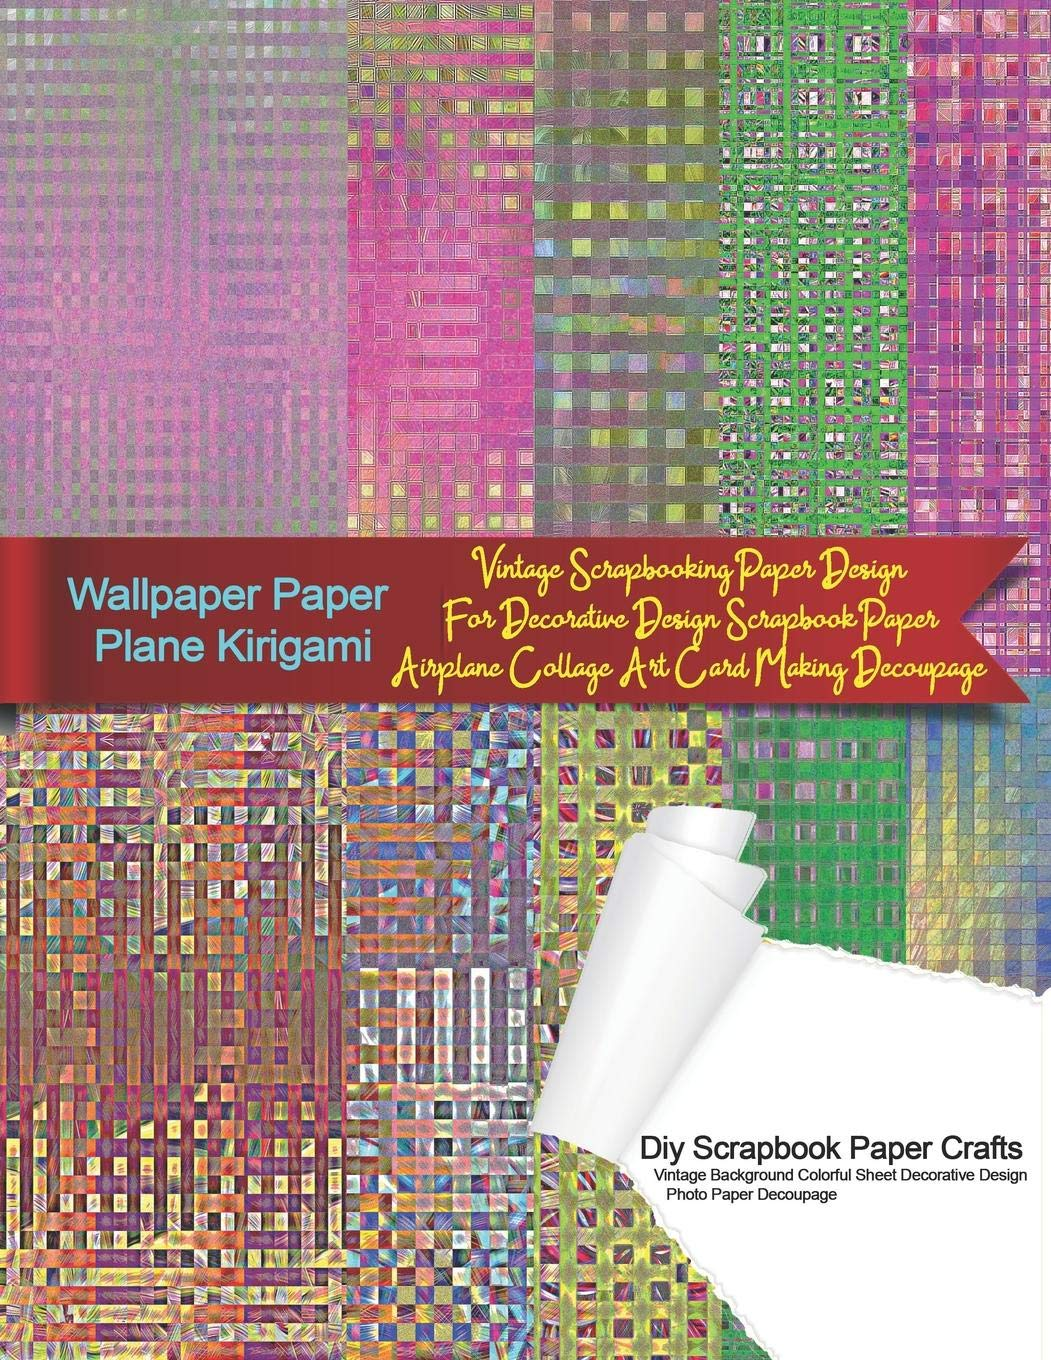 Wallpaper Paper Plane Kirigami Diy Scrapbook Paper Crafts Vintage Background Colorful Sheet Decorative Design Photo Paper Decoupage Vintage Paper Crafts 8 5x11 Card Making Series Warni Tukang Warna 9781081627492 Amazon Com Books